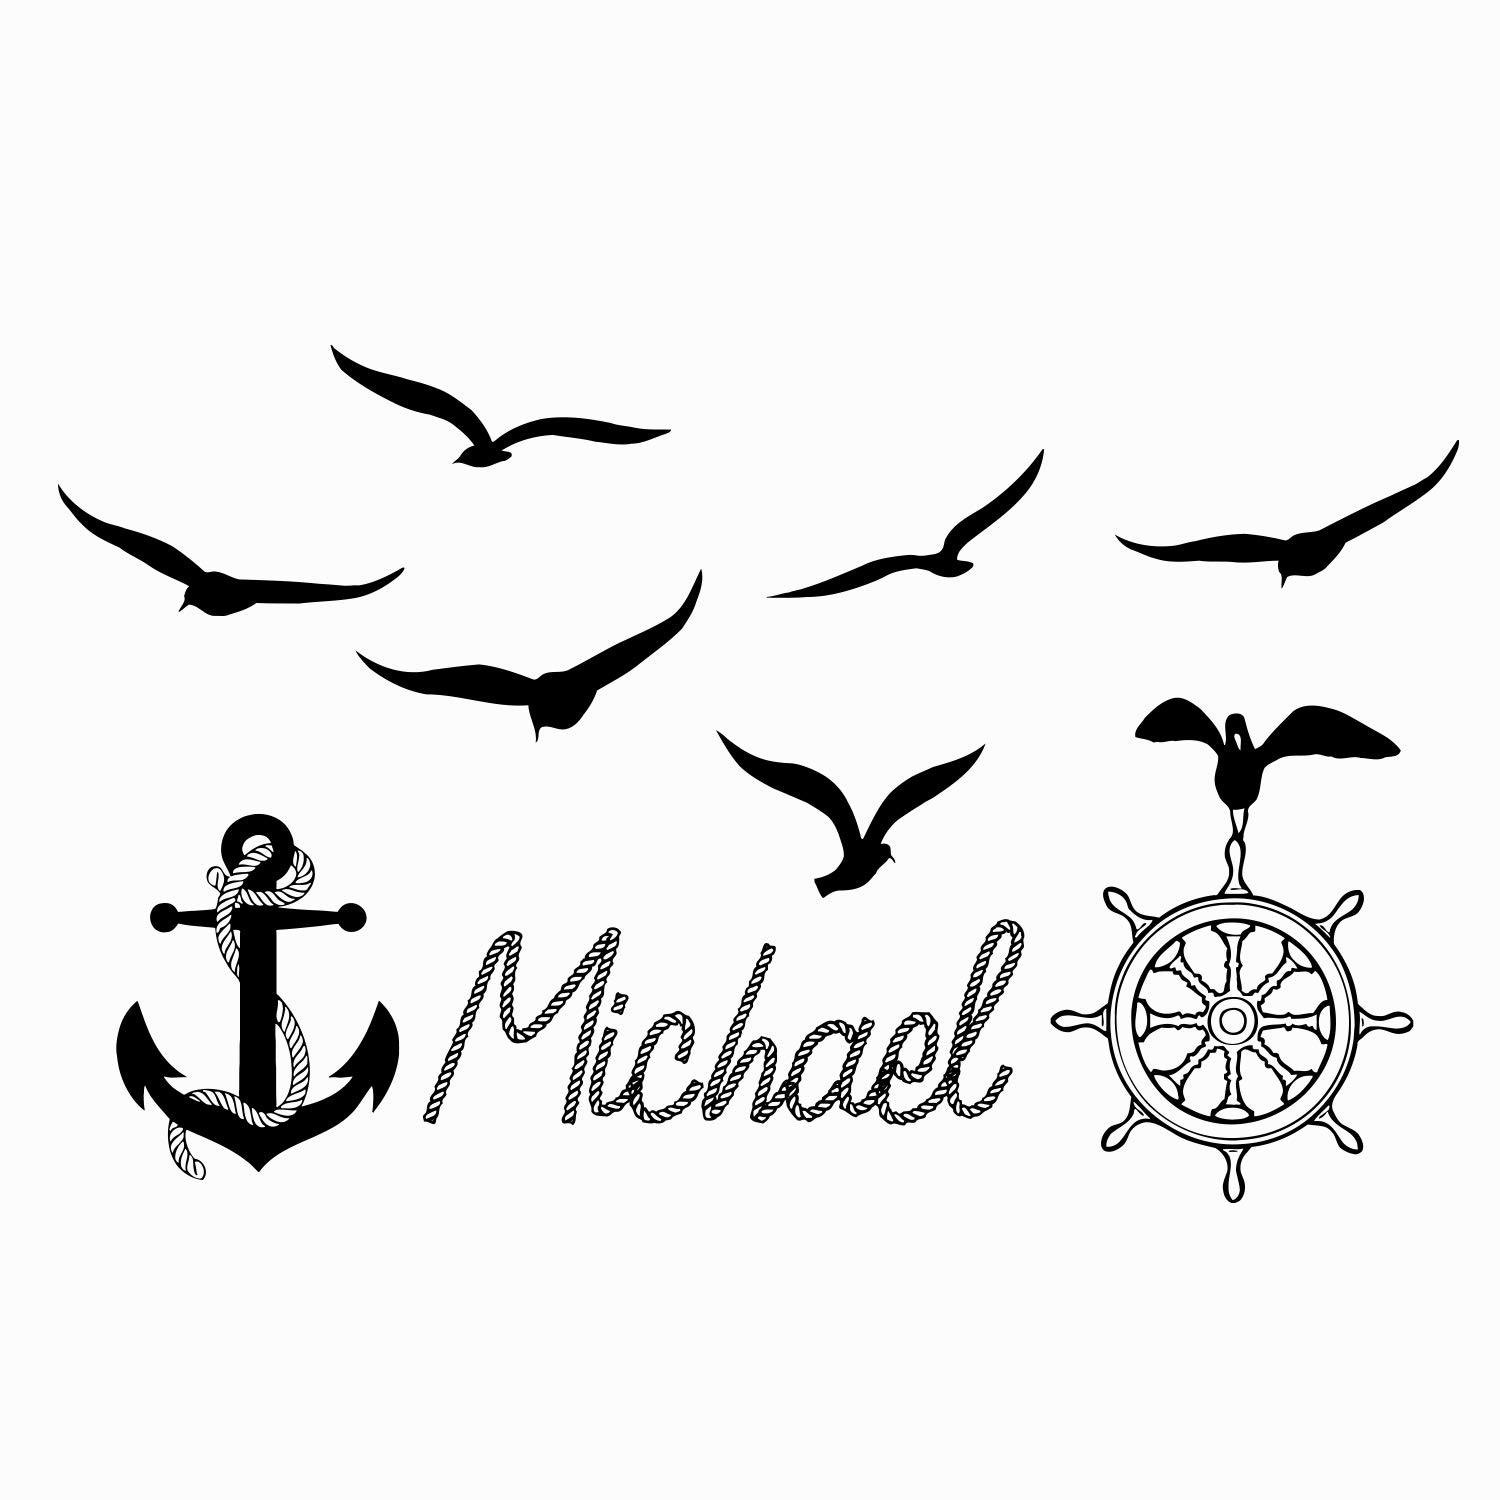 KOTWDQ Name WALL DECAL BOY Nautical Anchor Ship Wheel Seagulls Nursery Kids  Baby Boys Room Vinyl Sticker Decals Name Nautical Wall Decor x267 22x34.